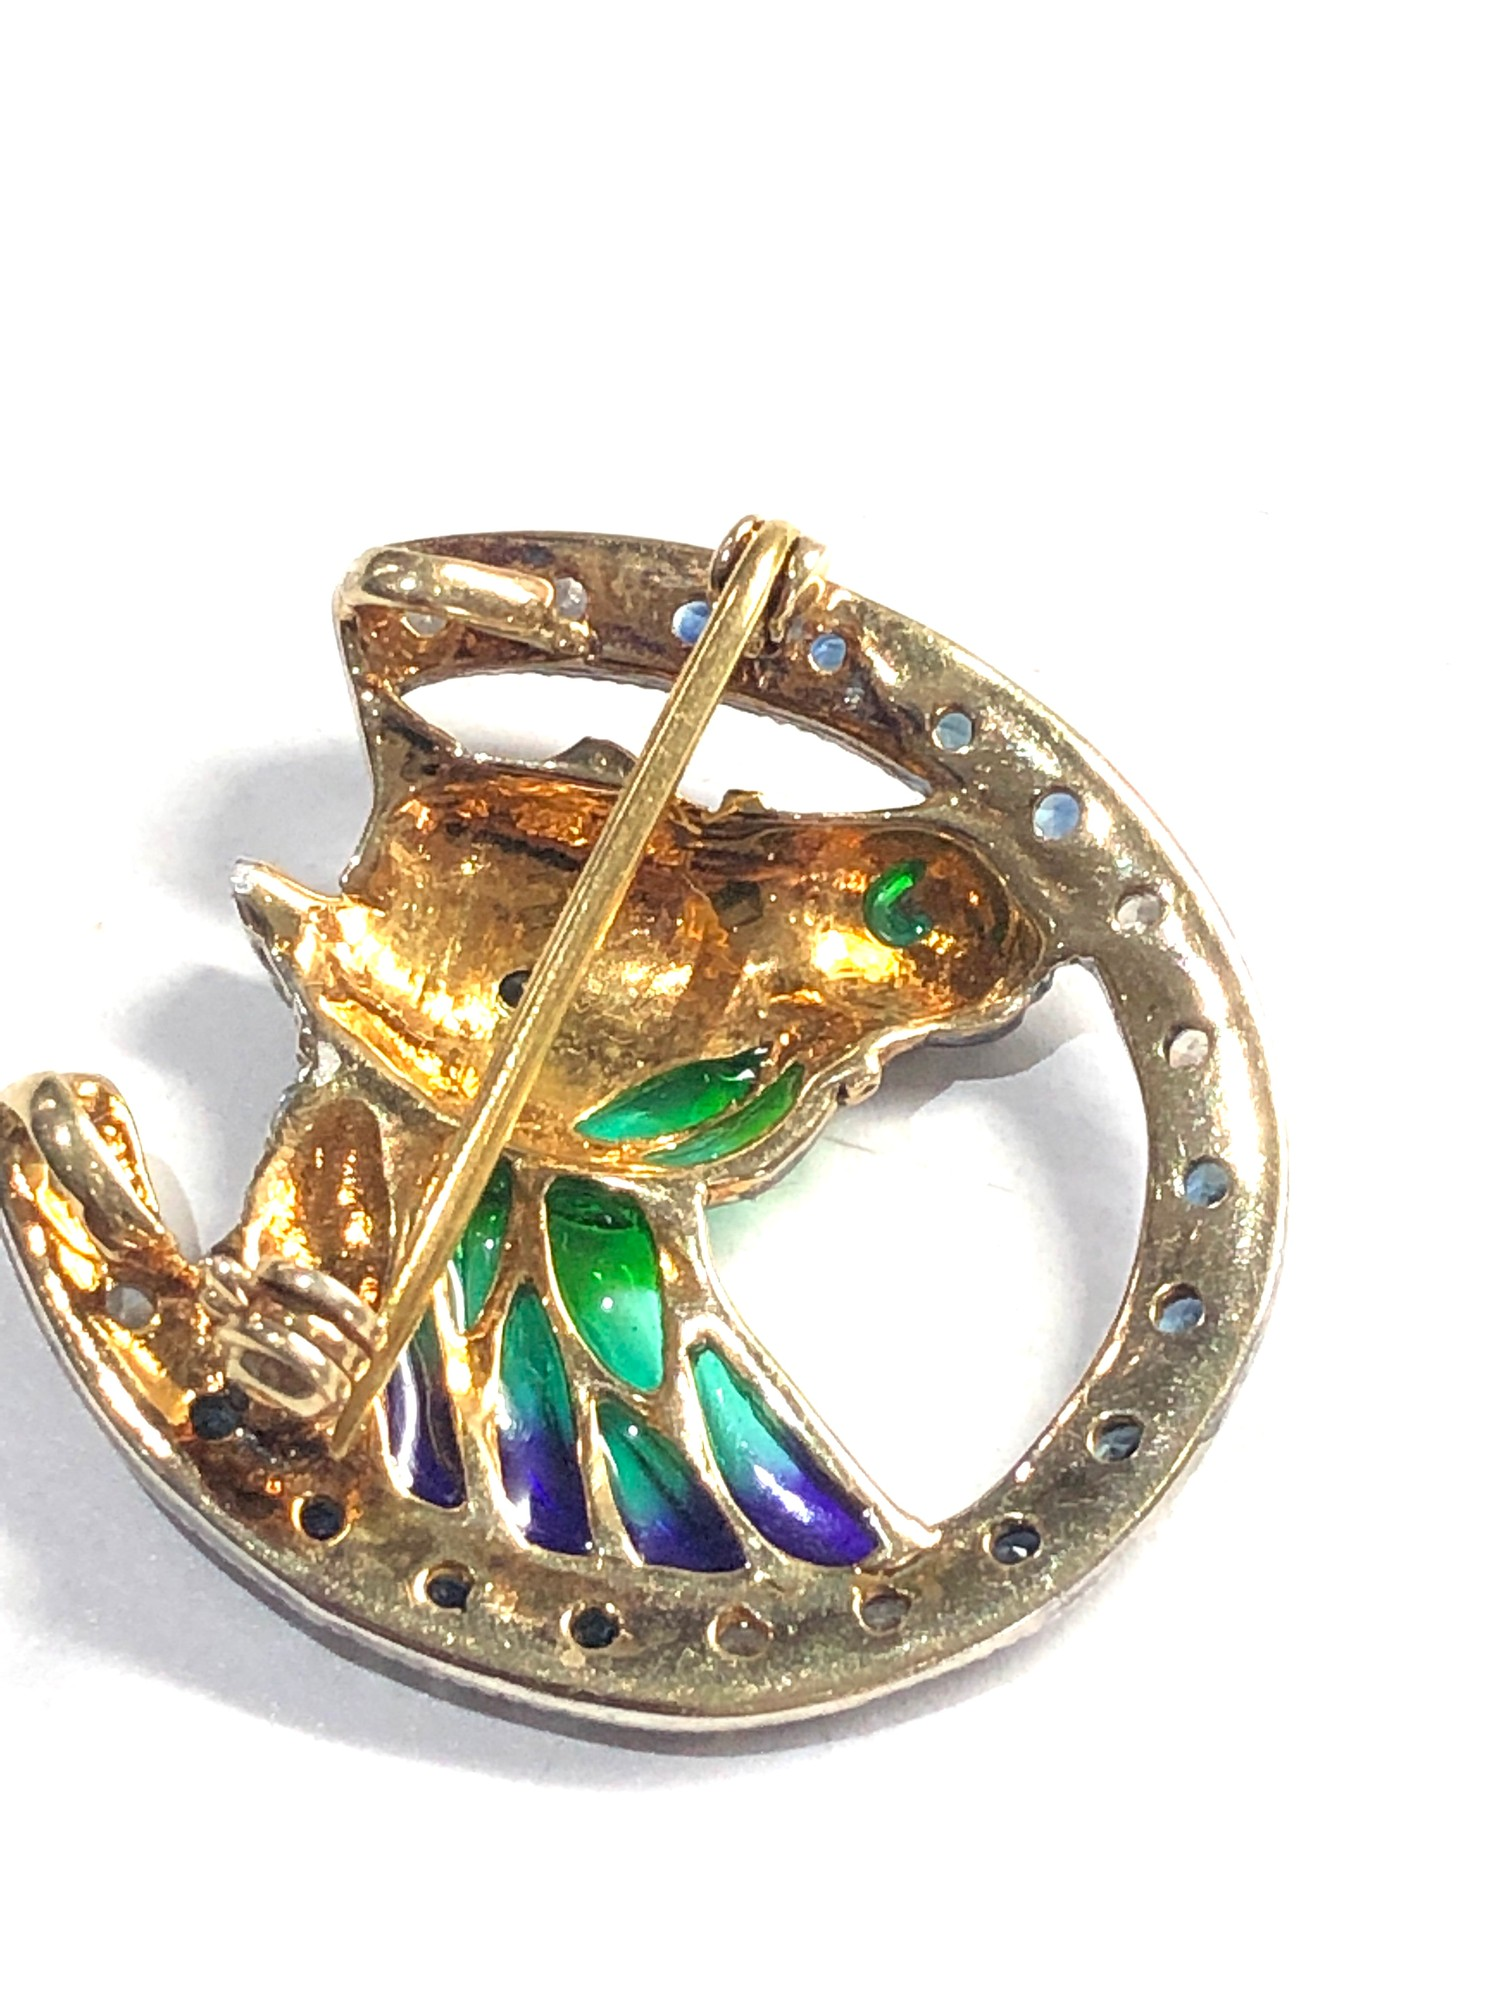 Fine Plique a Jour diamond and sapphire horse brooch gold back measures approx 2.8cm by 2.8cm - Image 4 of 4